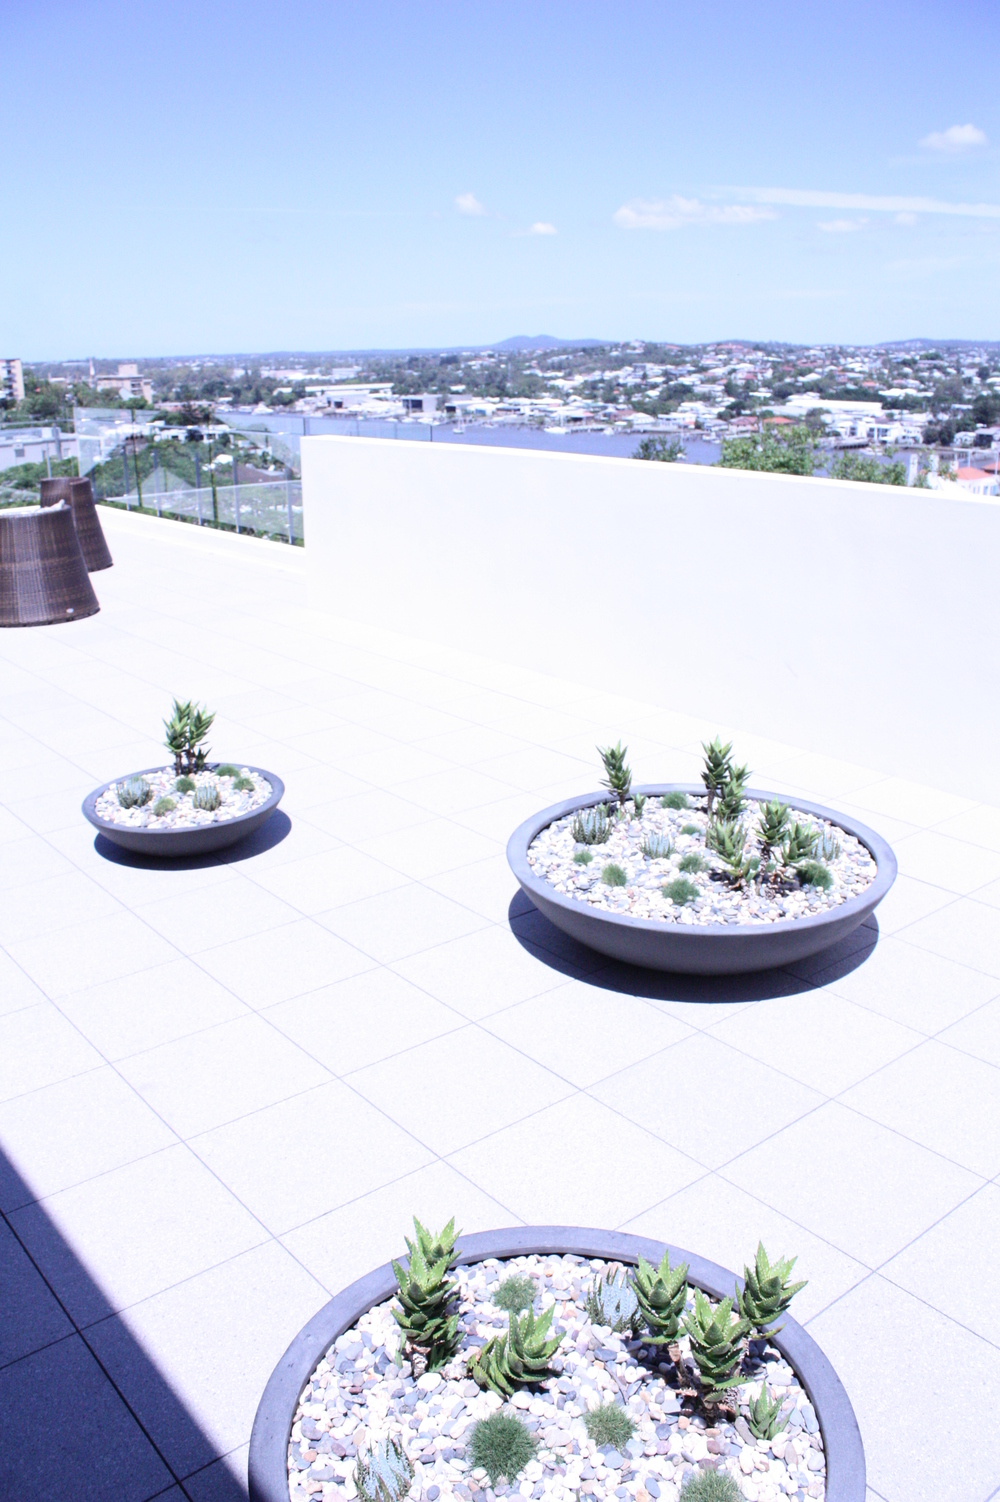 Hamilton, QLD Ultra-modern river-side property with rooftop and courtyard plantings.Read more...